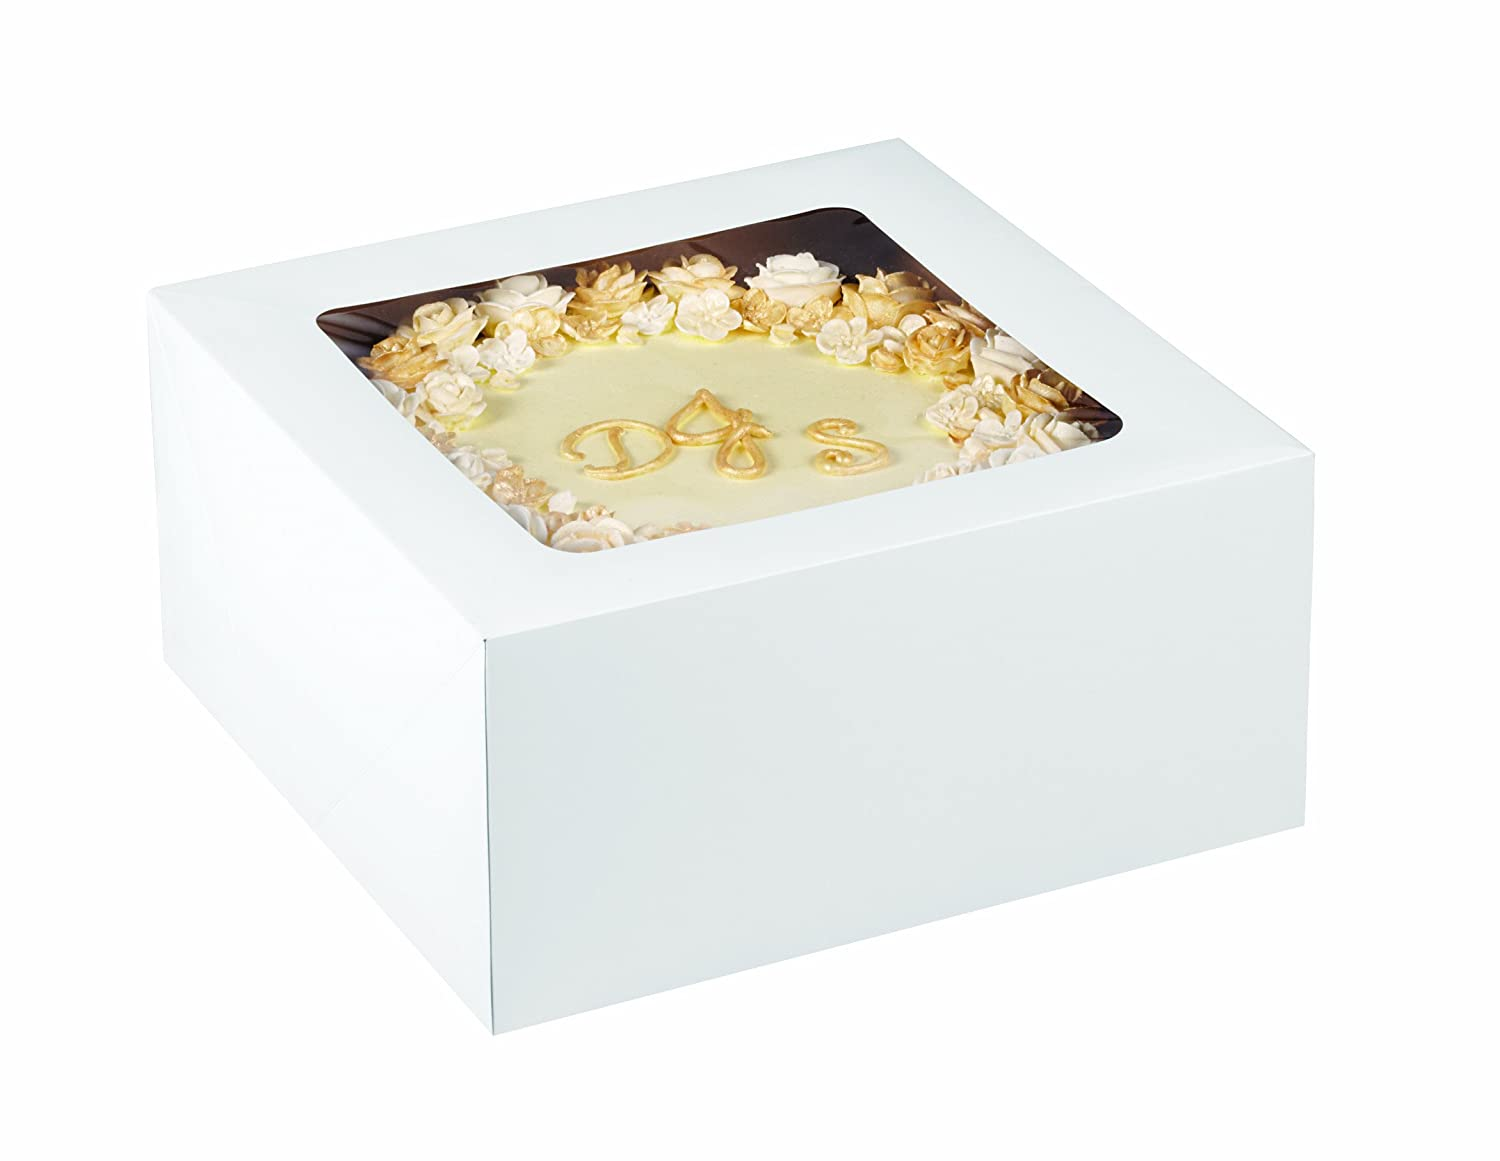 Amazon.com: Wilton 415-0966 2-Pack Corrugated Cake Box with Window, 19 by 14 by 4-Inch: Kitchen & Dining